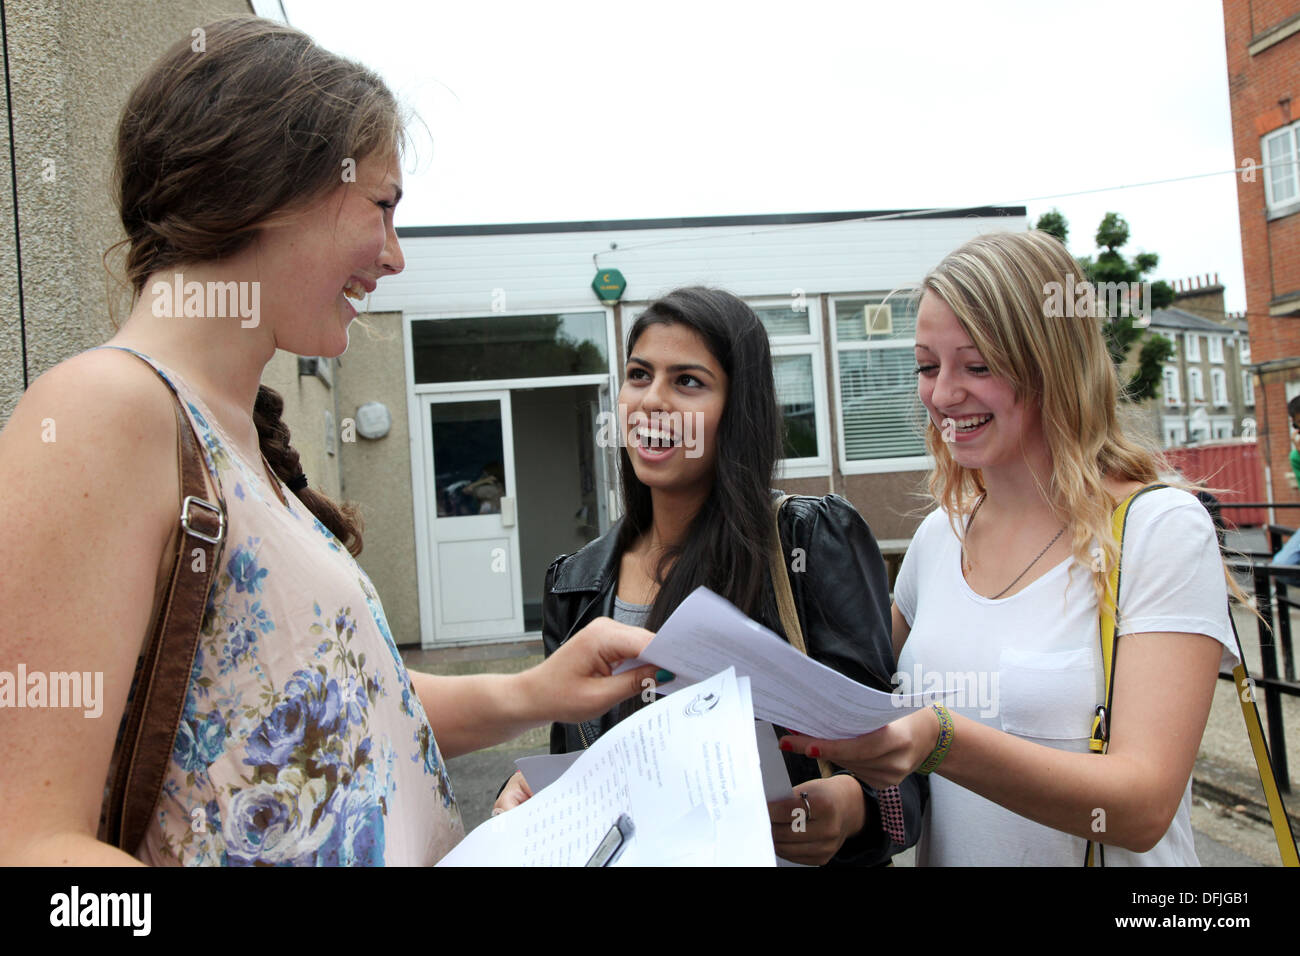 Girls with results from their AS-level exams, a qualification ranked between GCSE and A-level often taken at the age of 17. - Stock Image